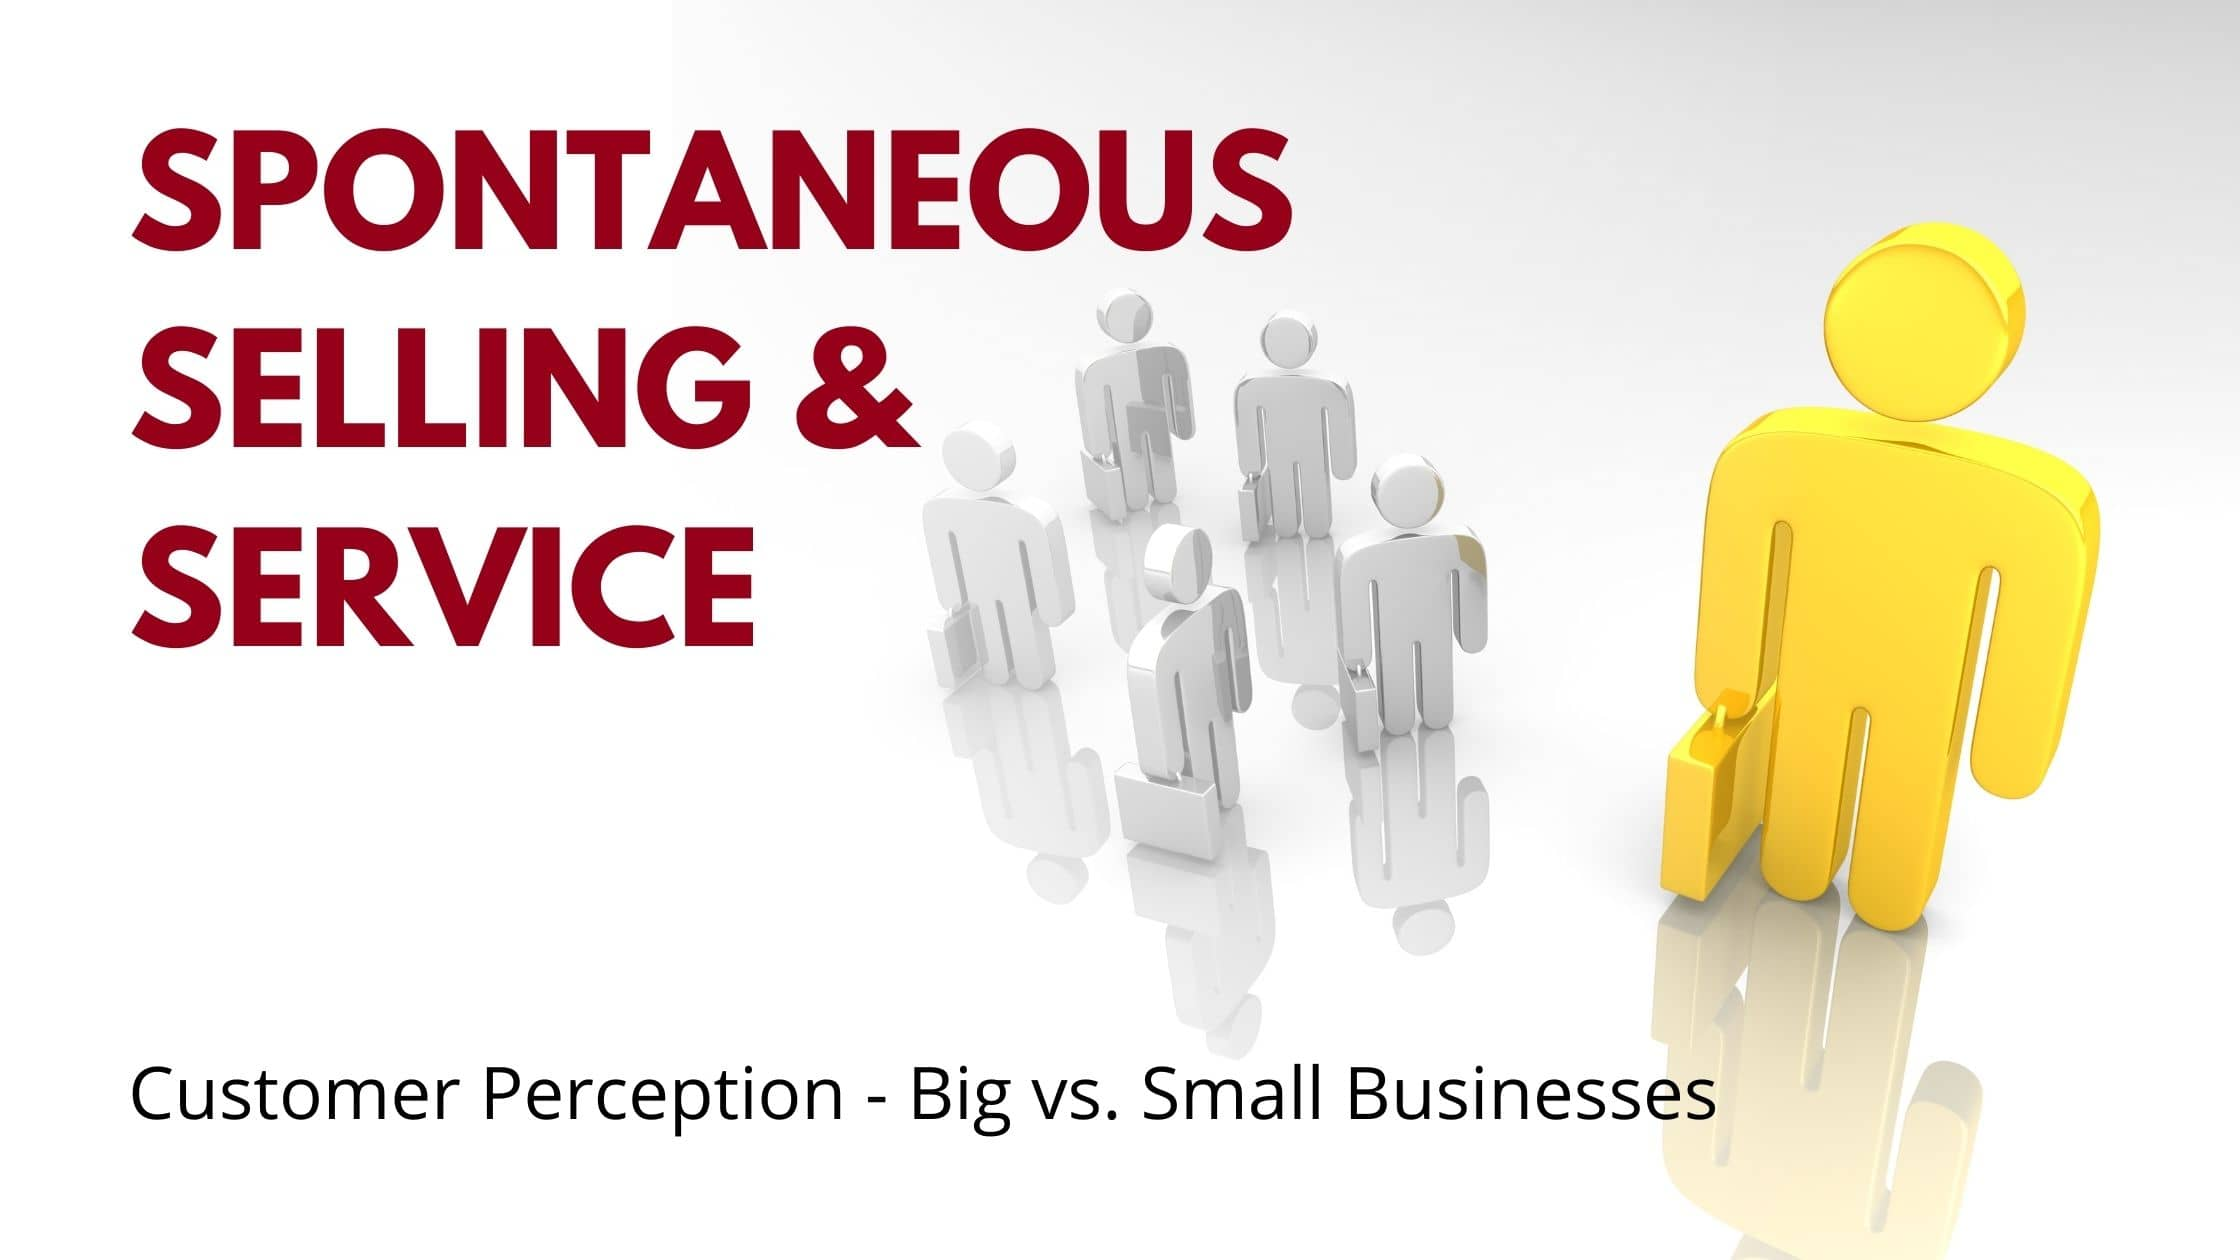 spontaneous selling and customer perception